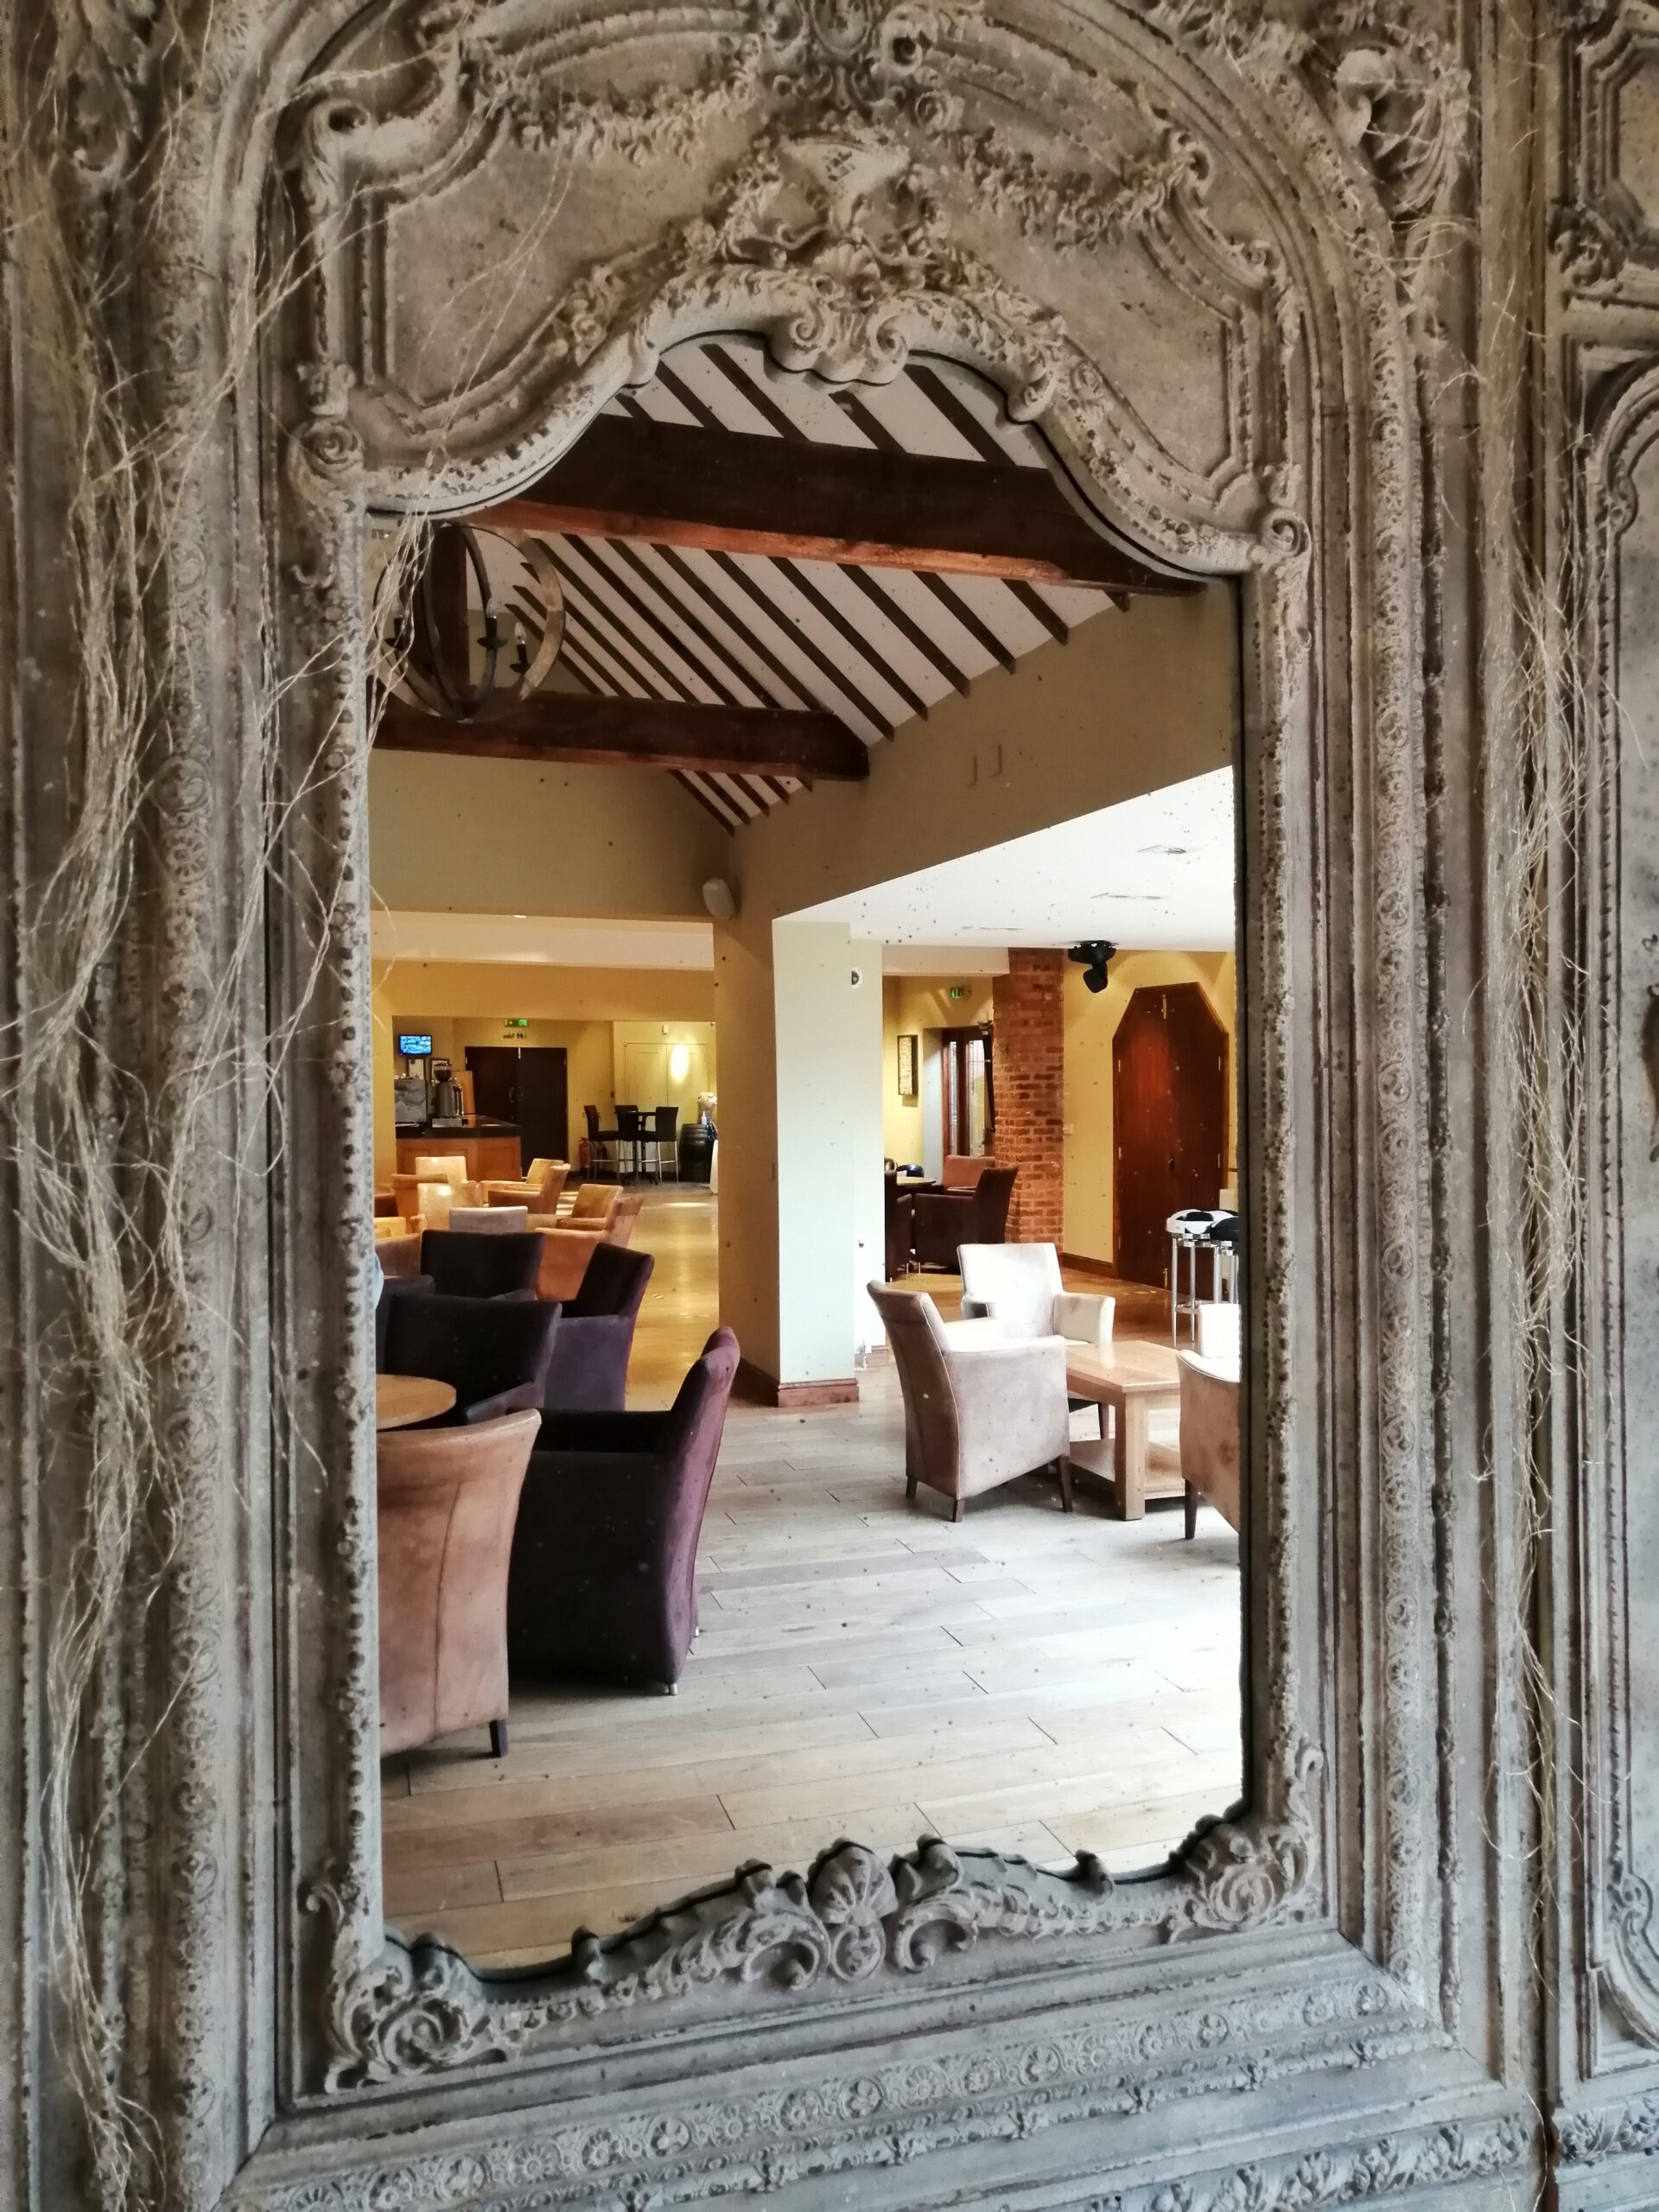 Magic mirror inside the Stables at Nuthurst Grange